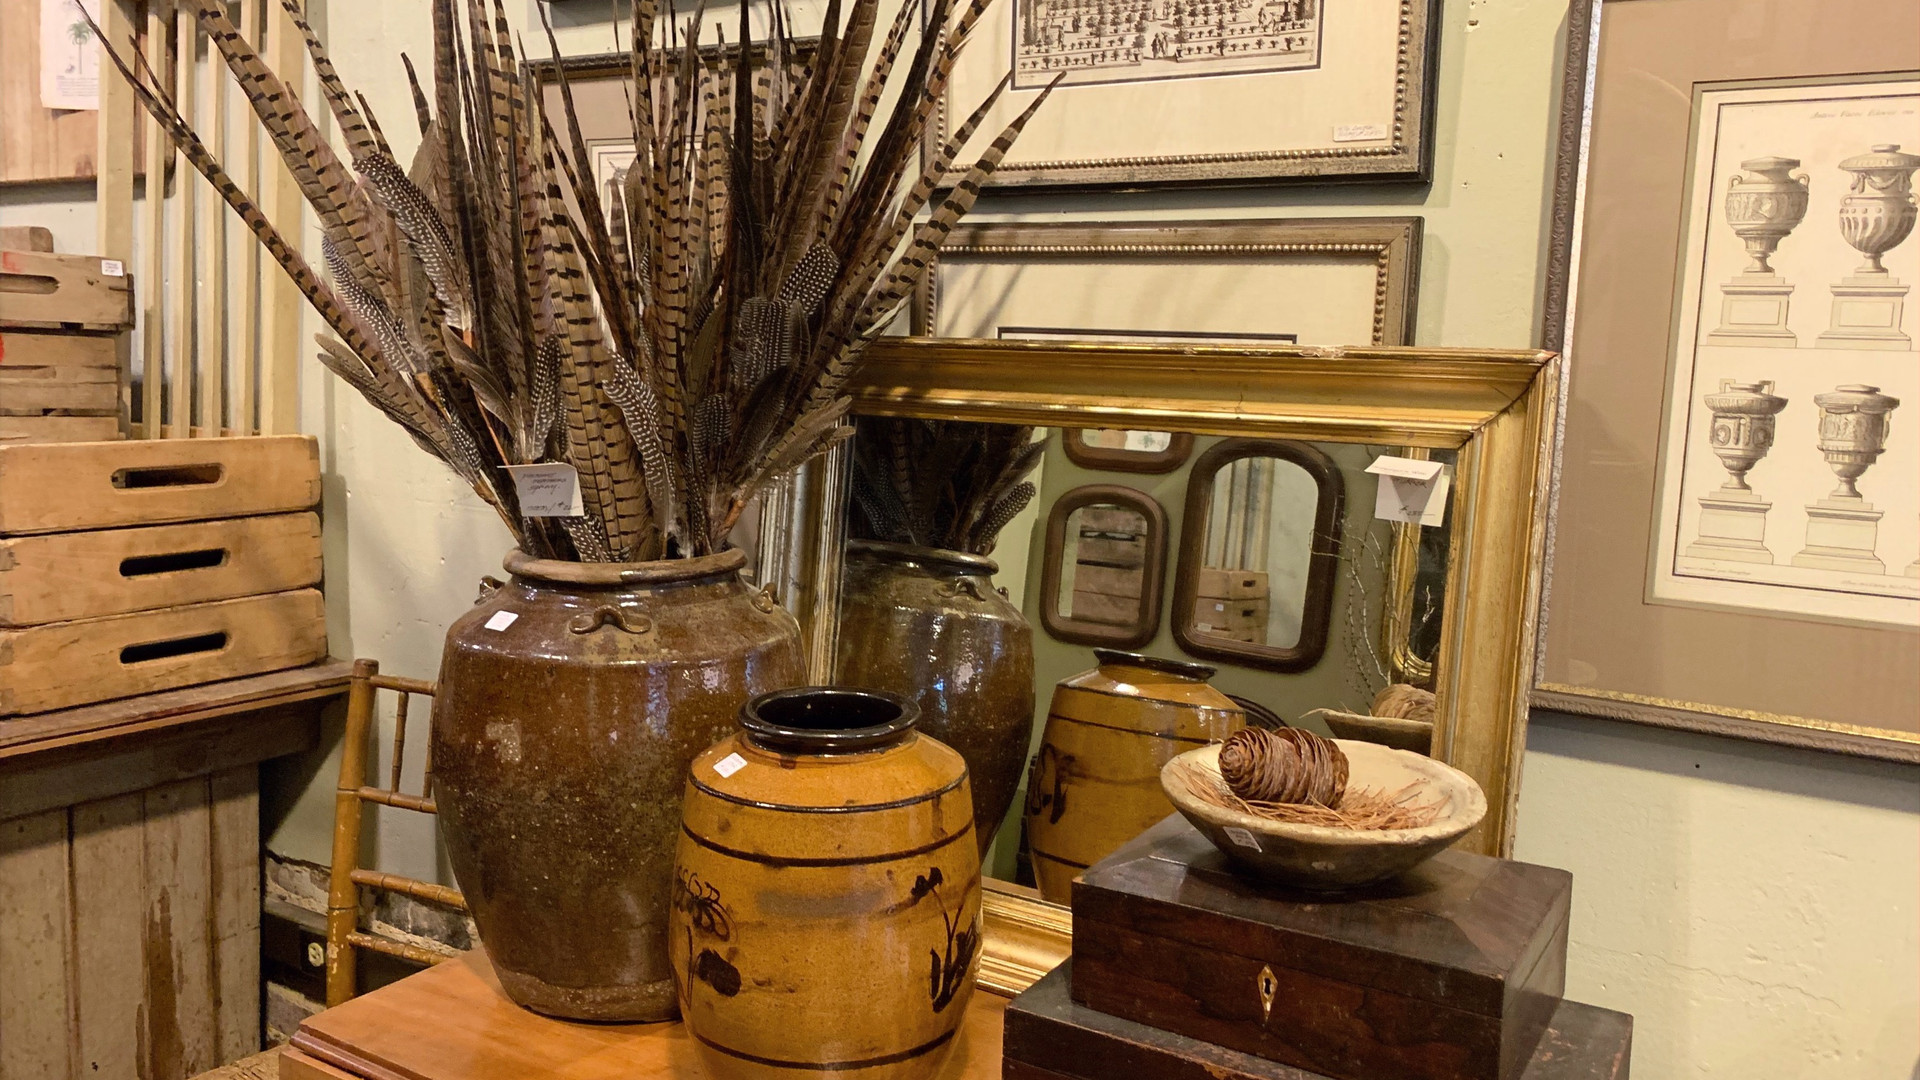 glazed pots with feathers in them, antique wood lock boxes framed prints on wall.